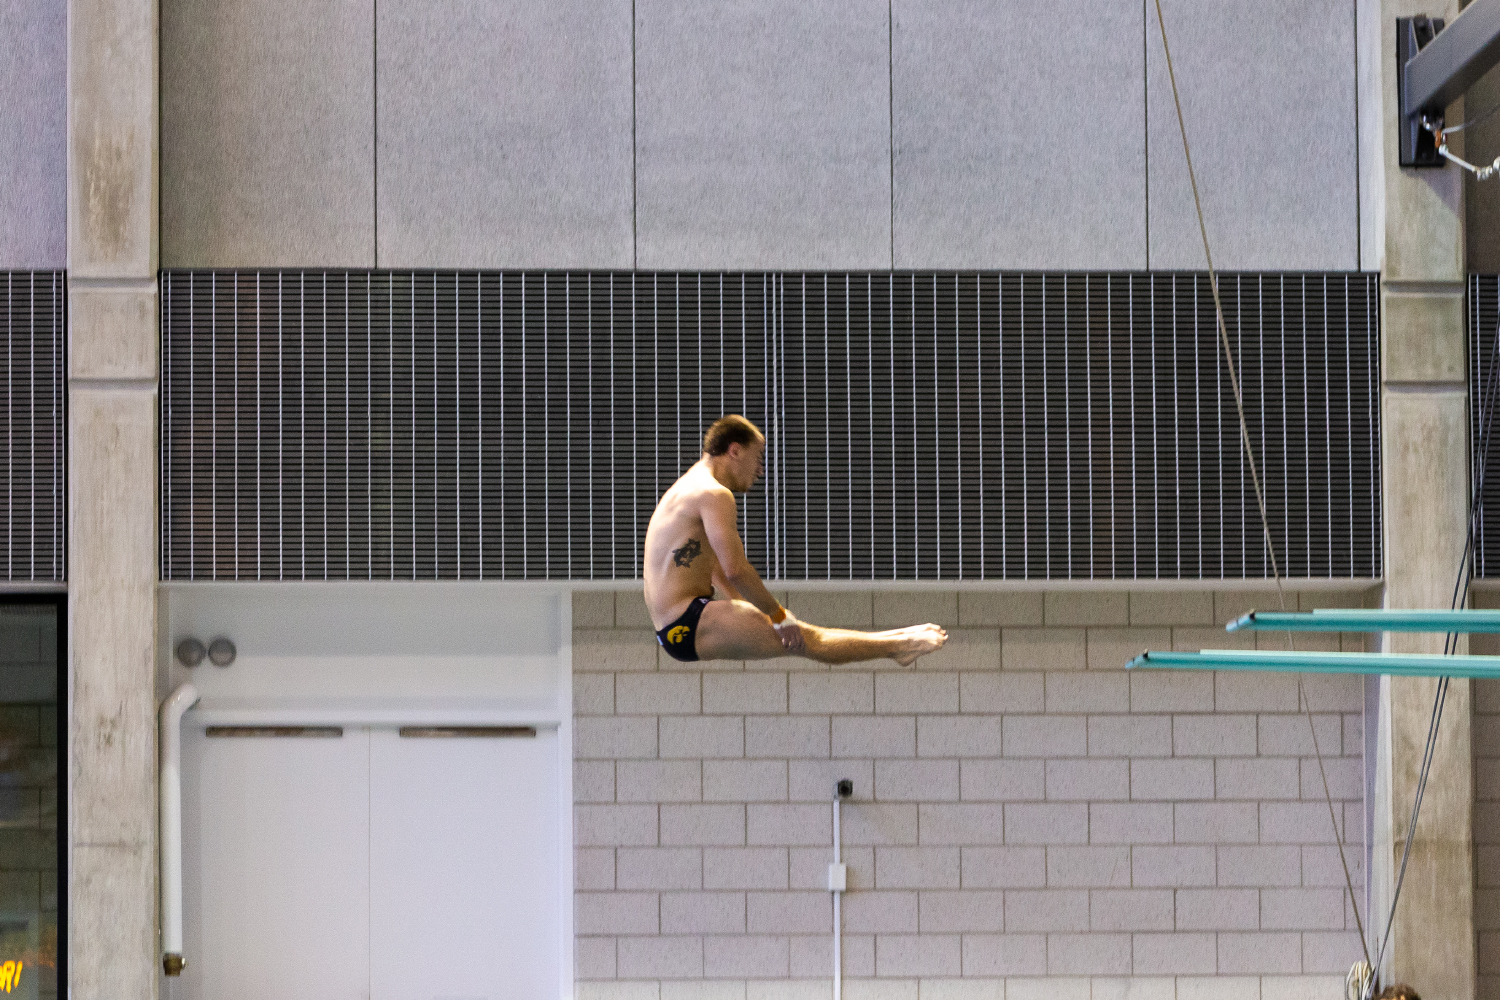 Iowa diver Anton Hoherz dives off the three-meter board in the preliminary diving rounds of the Hawkeye Invitational on Thursday, Nov. 15, 2018. (David Harmantas/The Daily Iowan)